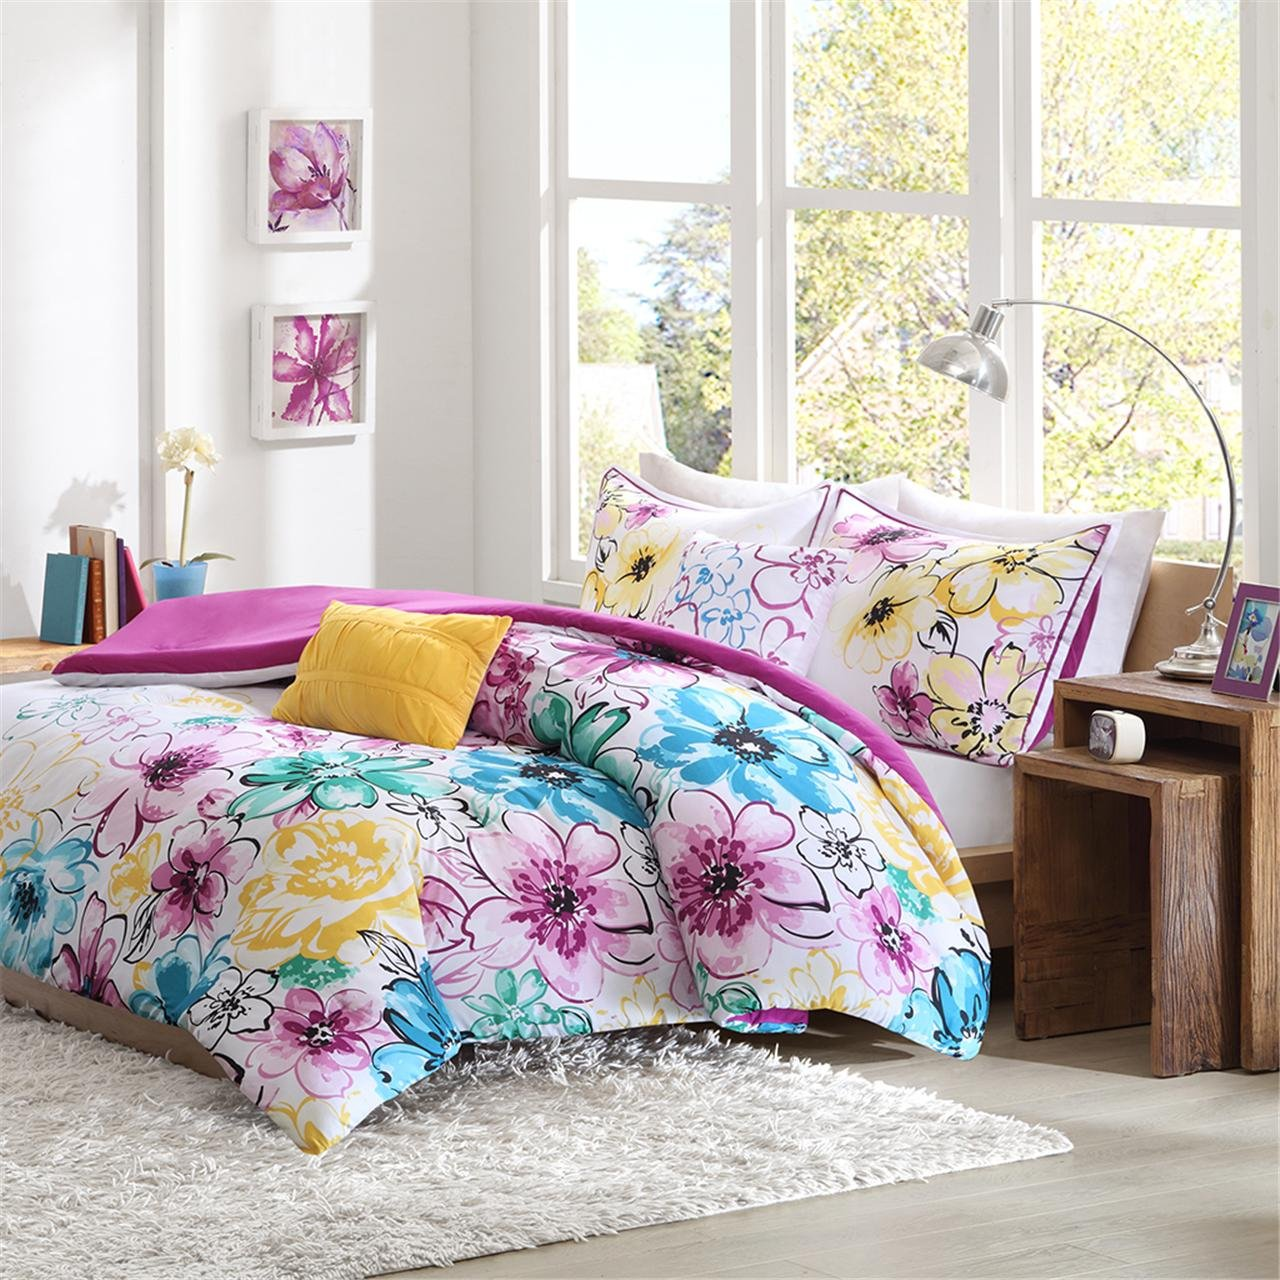 blue floral bedding sets sale – ease bedding with style - intelligent design olivia  piece comforter set fullqueen blue